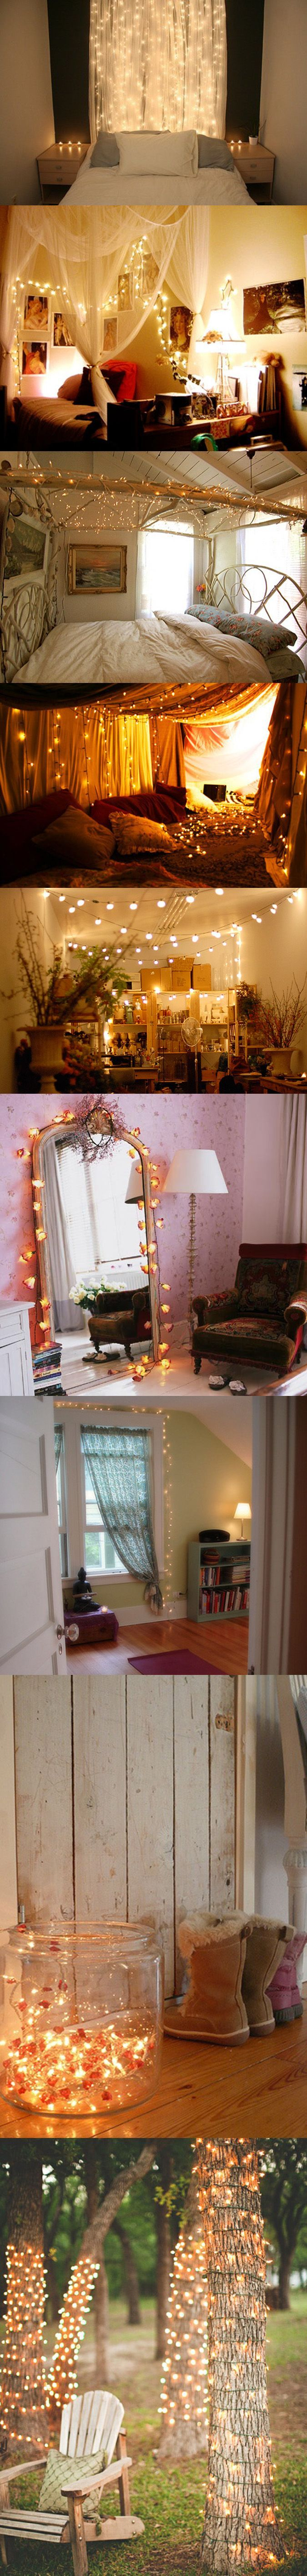 Use Christmas lights to decorate your home outside of the winter season. #MindfulLiving OurMLN.com